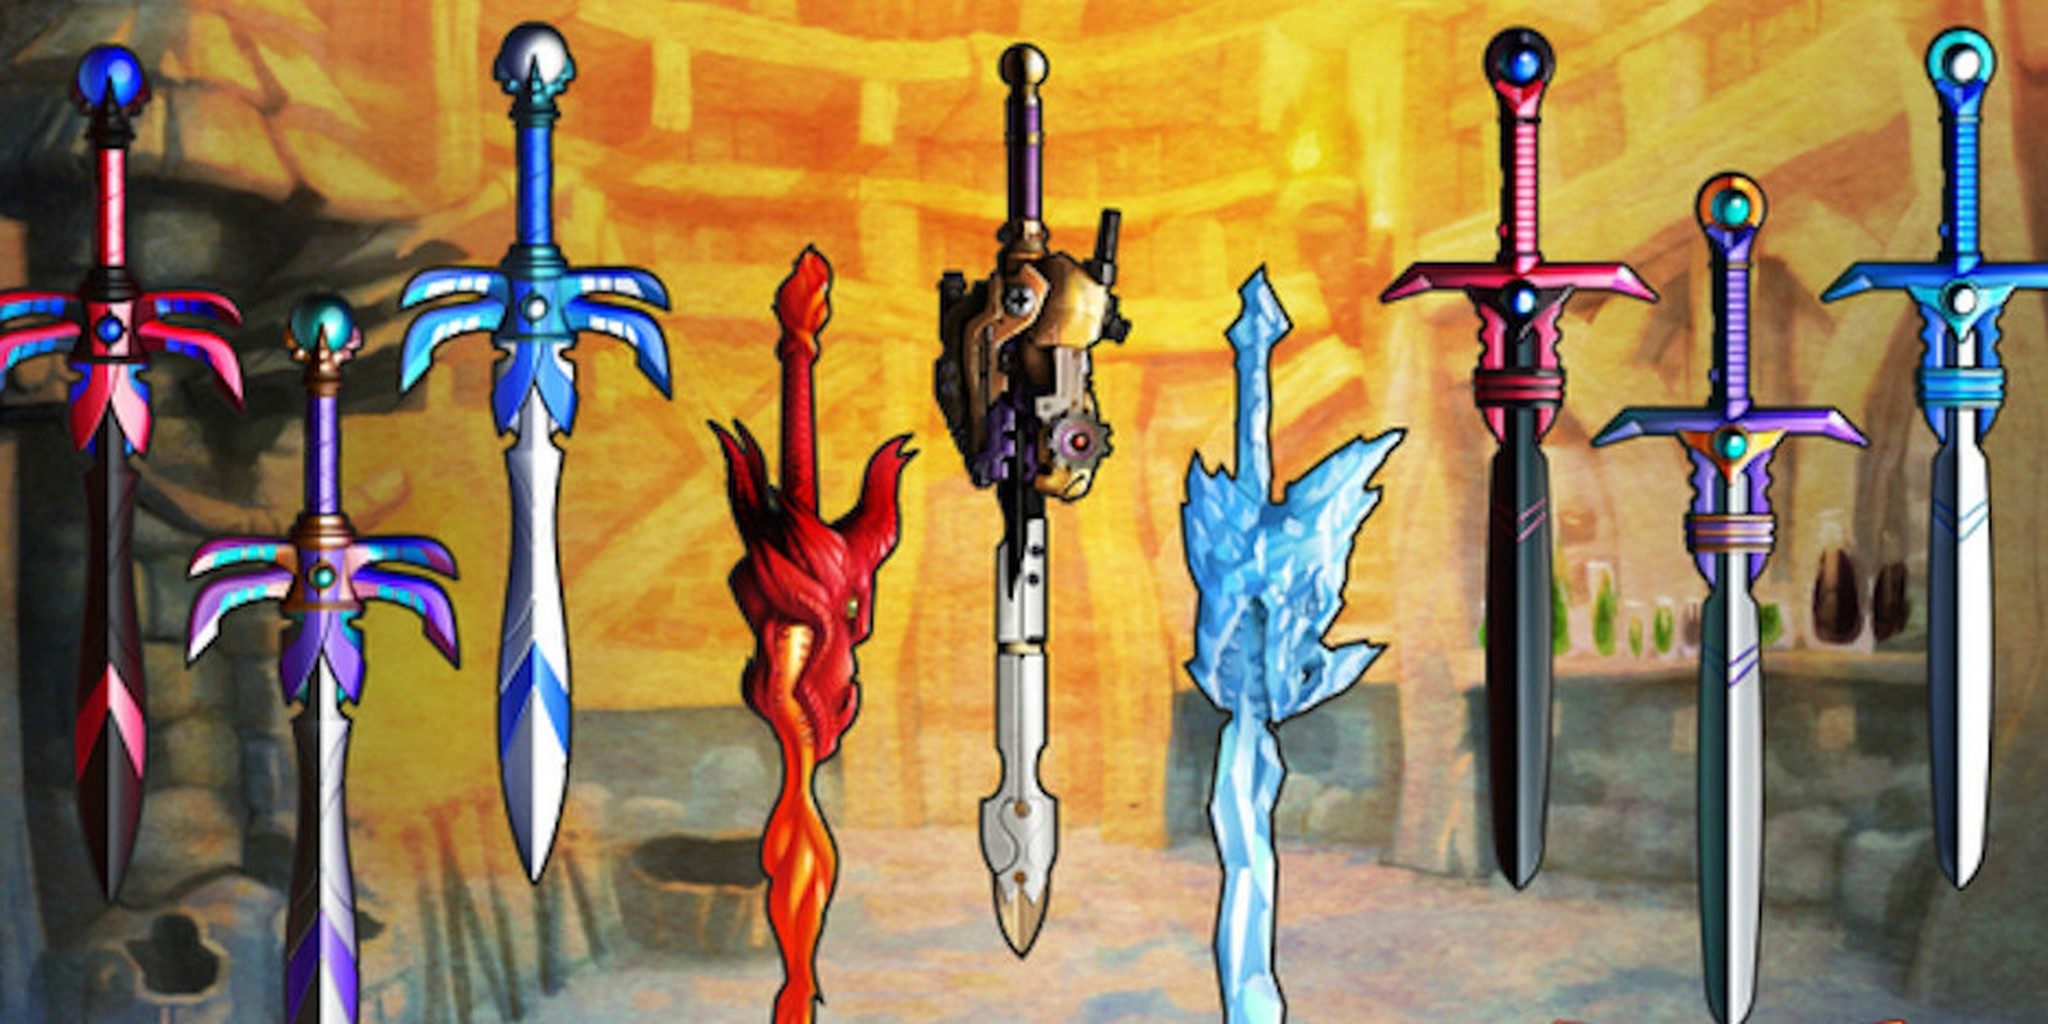 This dad makes the most awesome toy swords ever